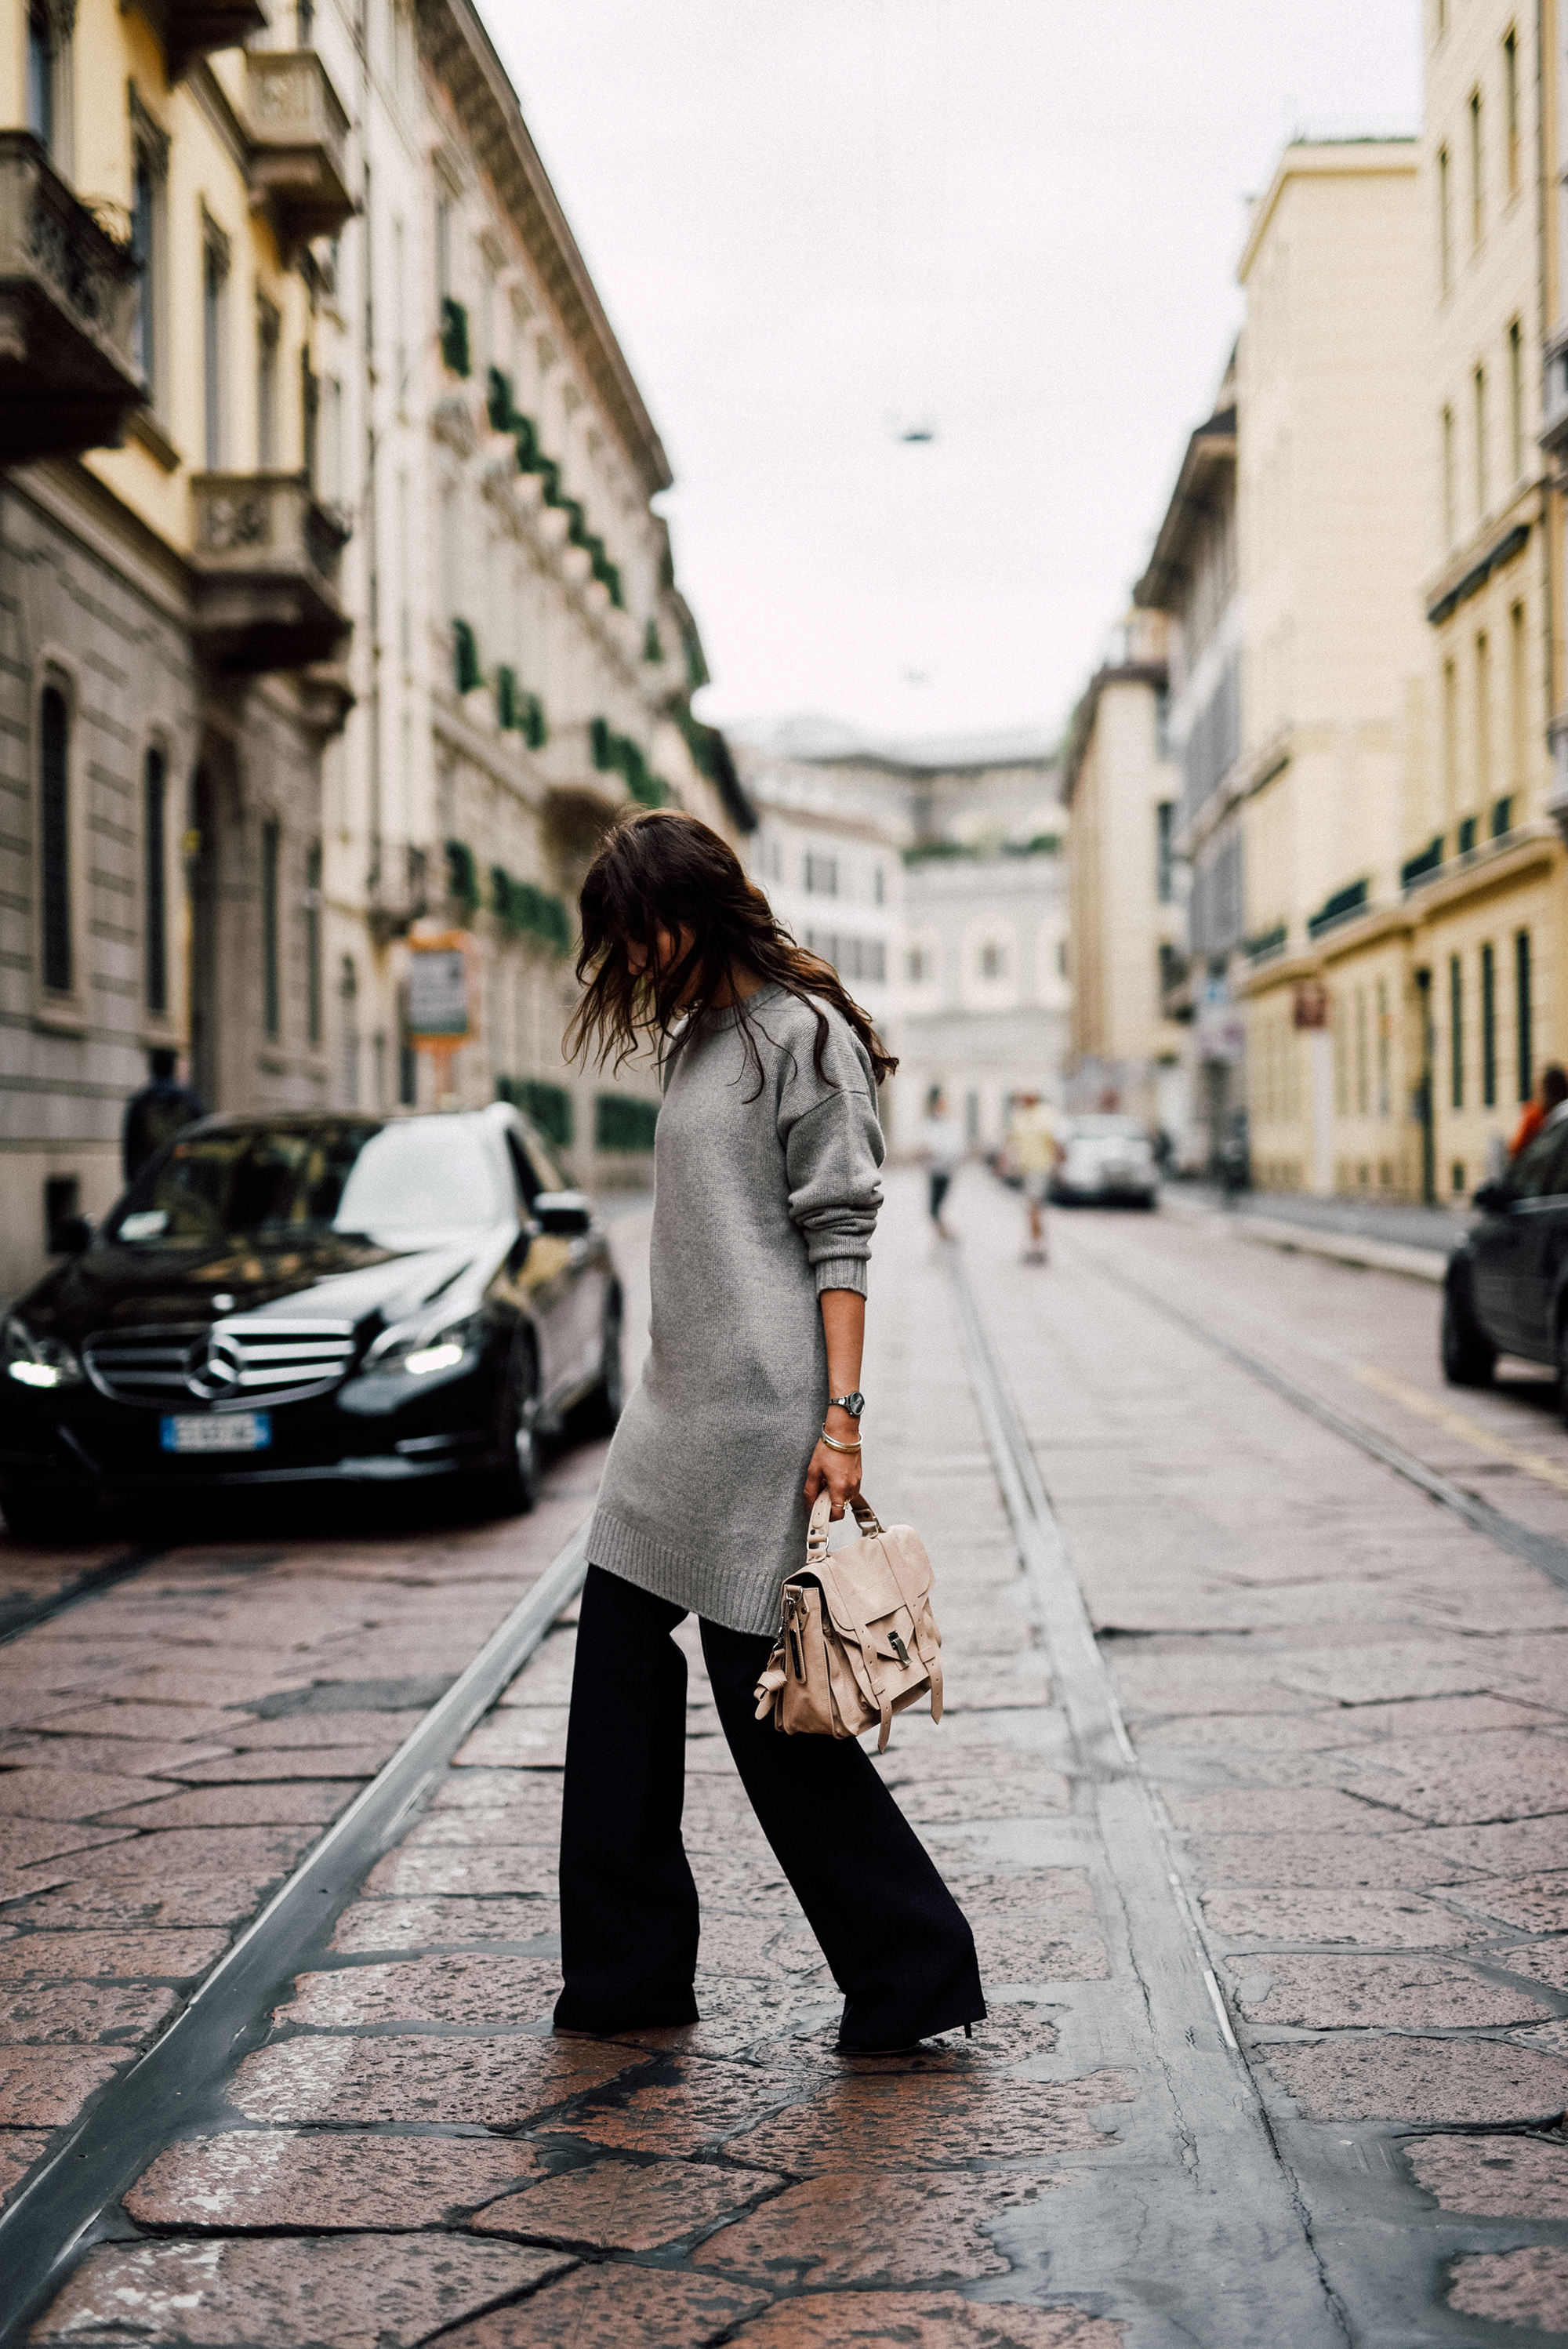 Try wearing oversized knitwear to get the casual but sophisticated vibe rocked here by Sylvia Haghjoo. Pairing a long cashmere sweater with wide legged trousers creates a great winter look. Sweater/Bag: Uzwei, Trousers: Jil Sander Proenza.